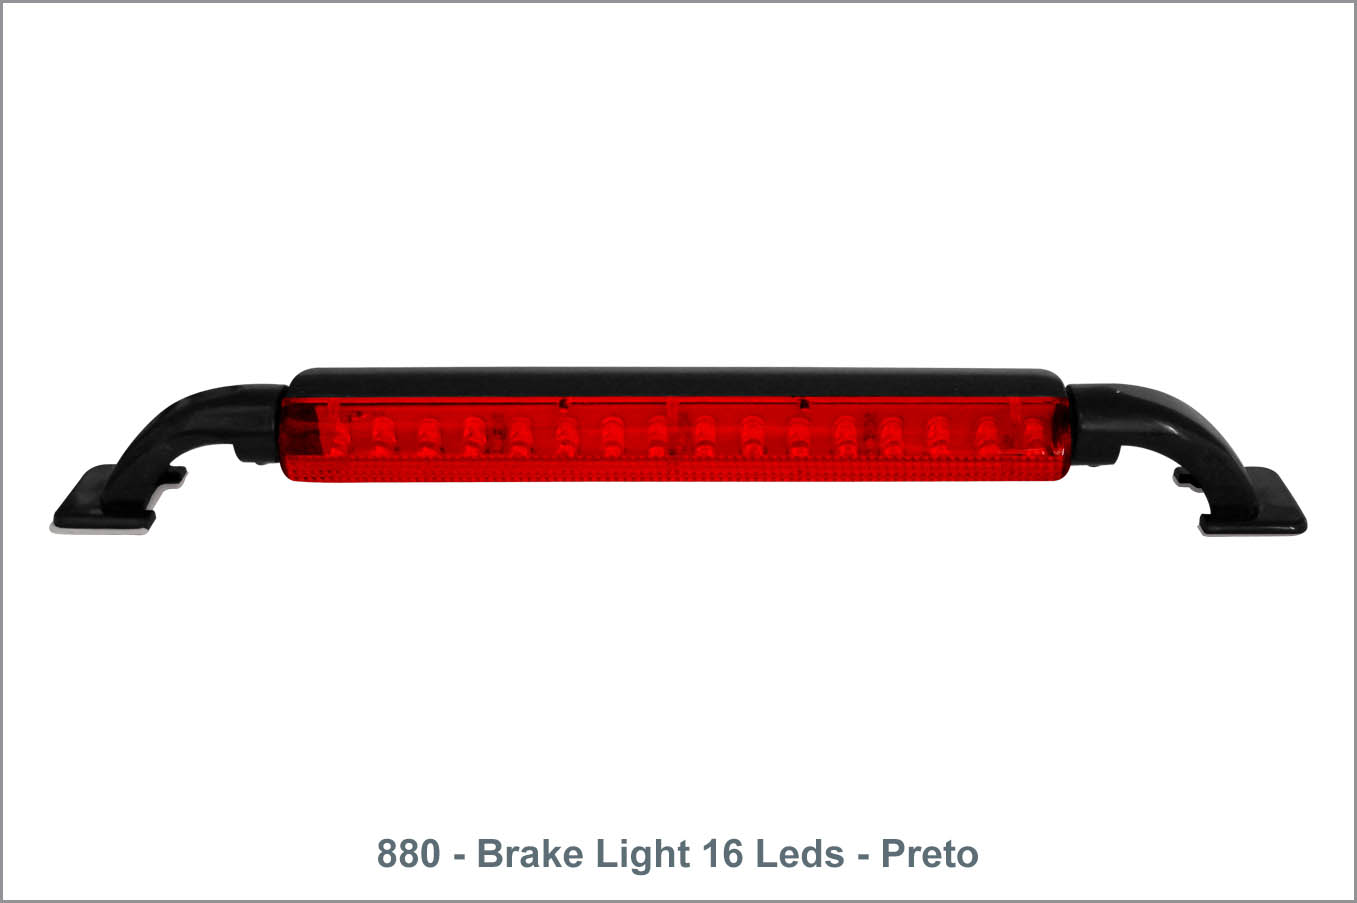 880 - Break Ligh 16 Leds - Preto